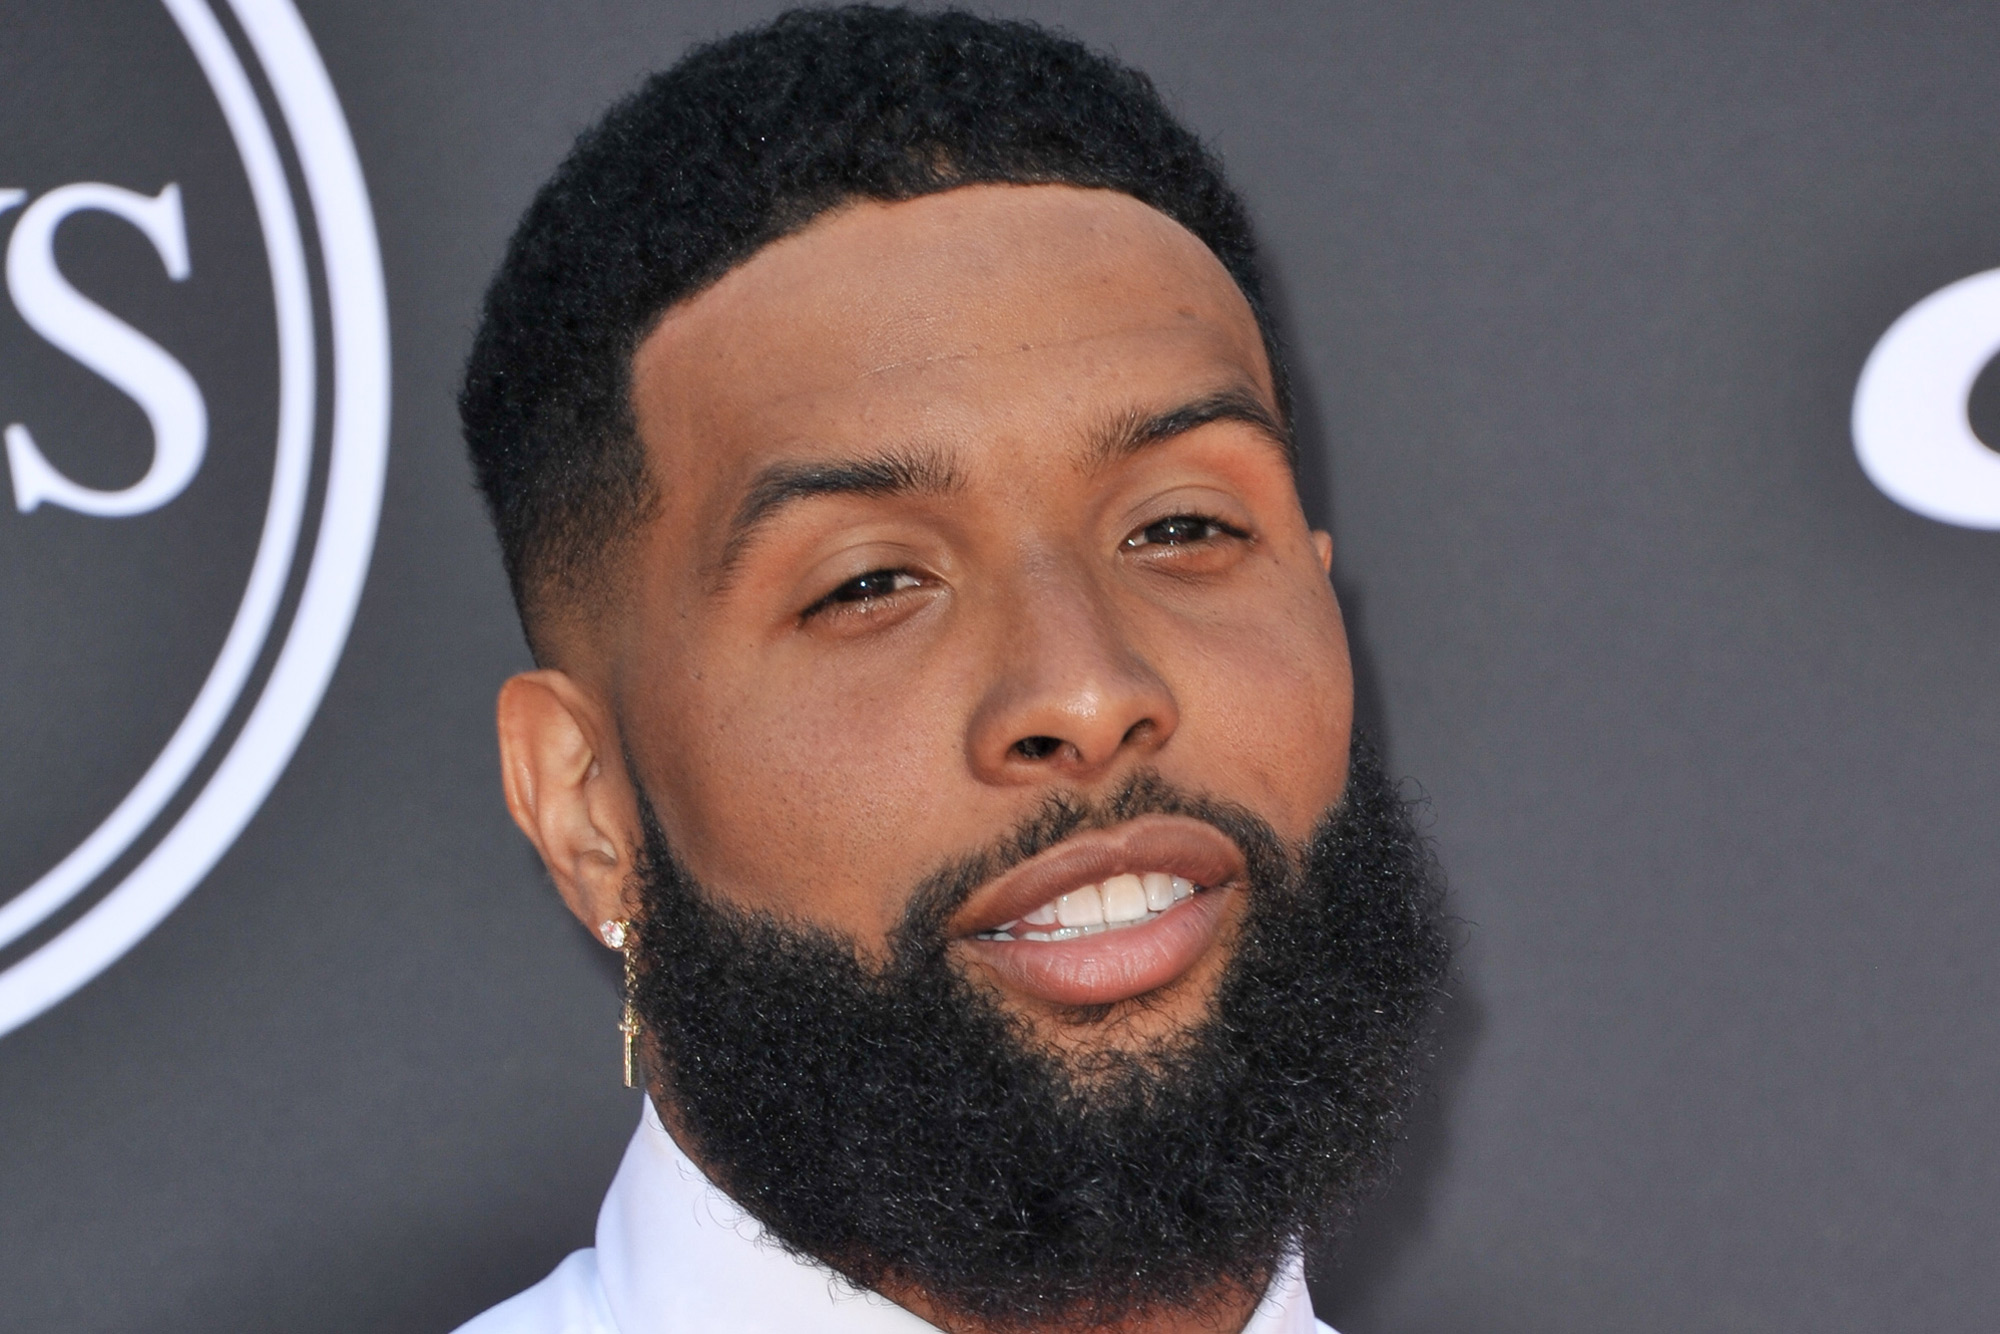 Odell Beckham Jr. debuts new haircut and weird outfit at 12 ESPYs